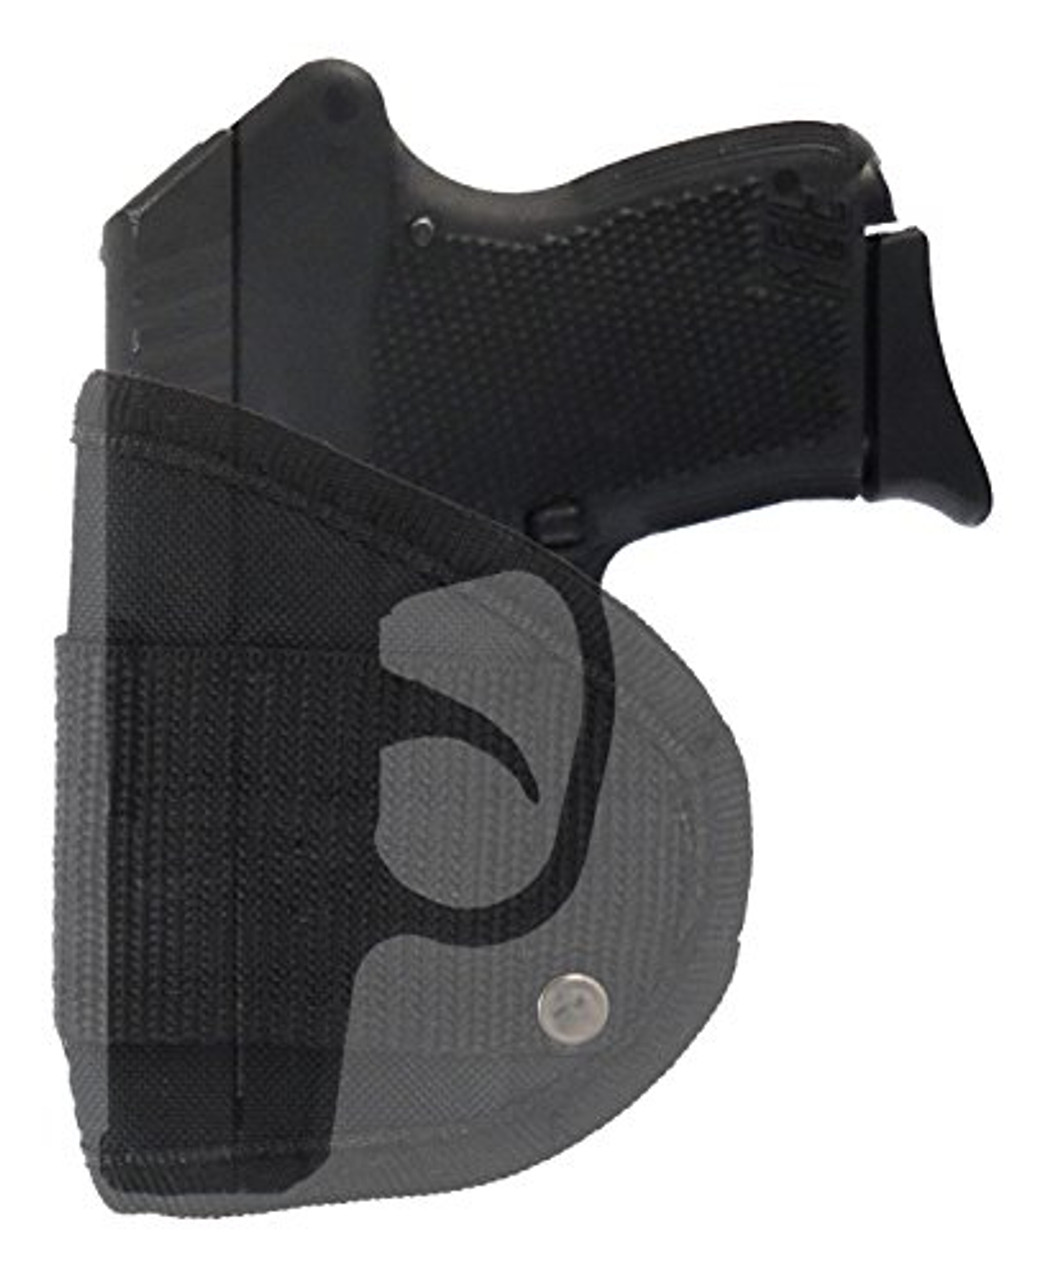 Kel-Tec P3AT 380 & P32 Custom Fit Inside Waistband Easy Draw Woven Poly Comfort Holster by Garrison Grip IWB (S1)